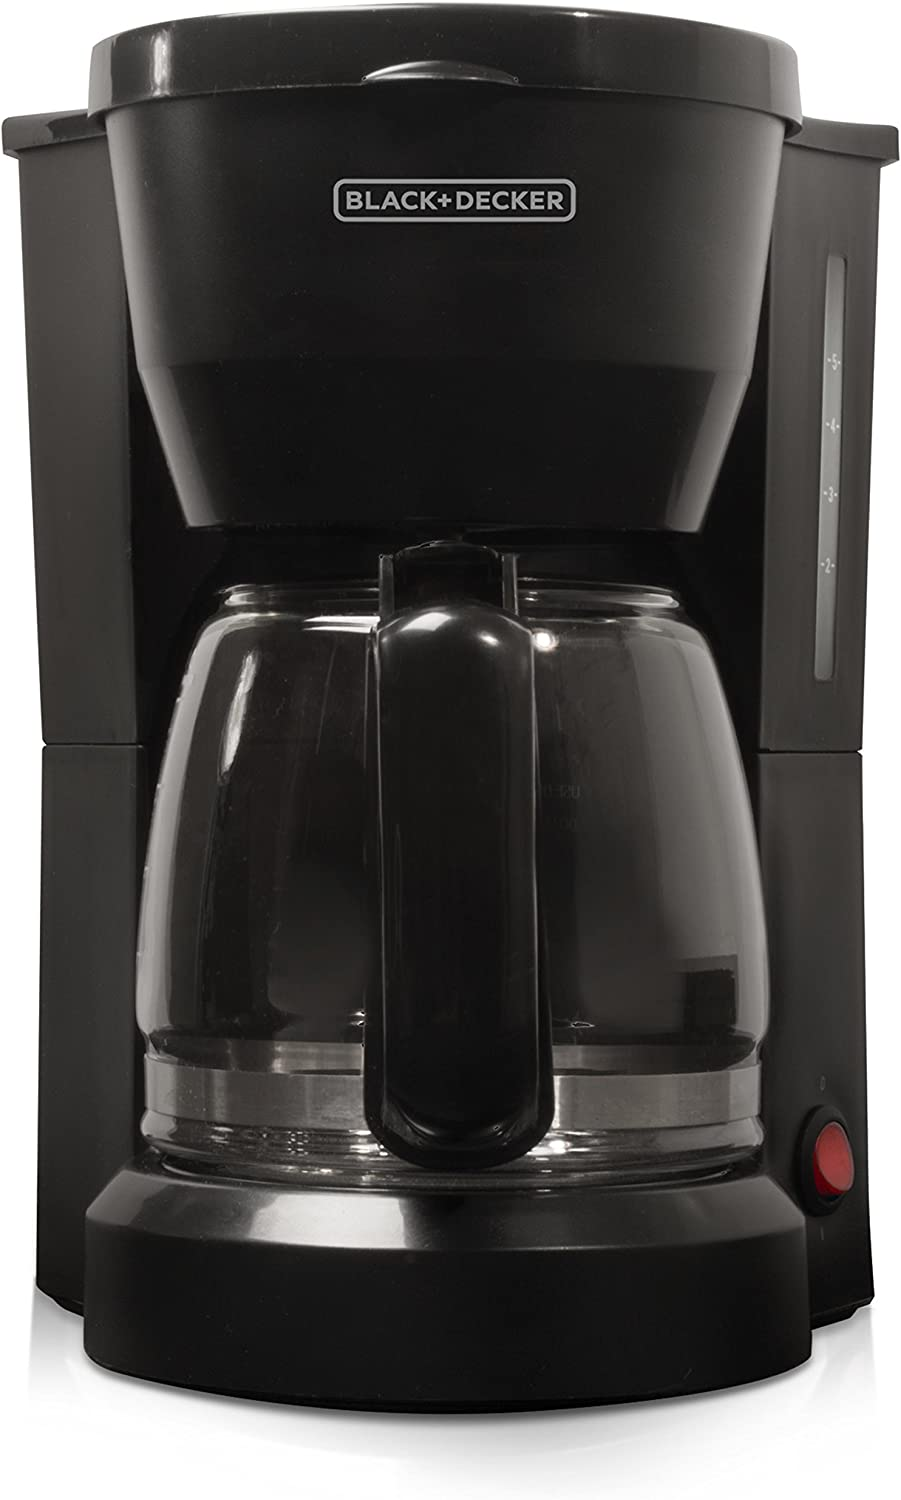 BLACK+DECKER DCM600B 5-CUP COFFEE MAKER